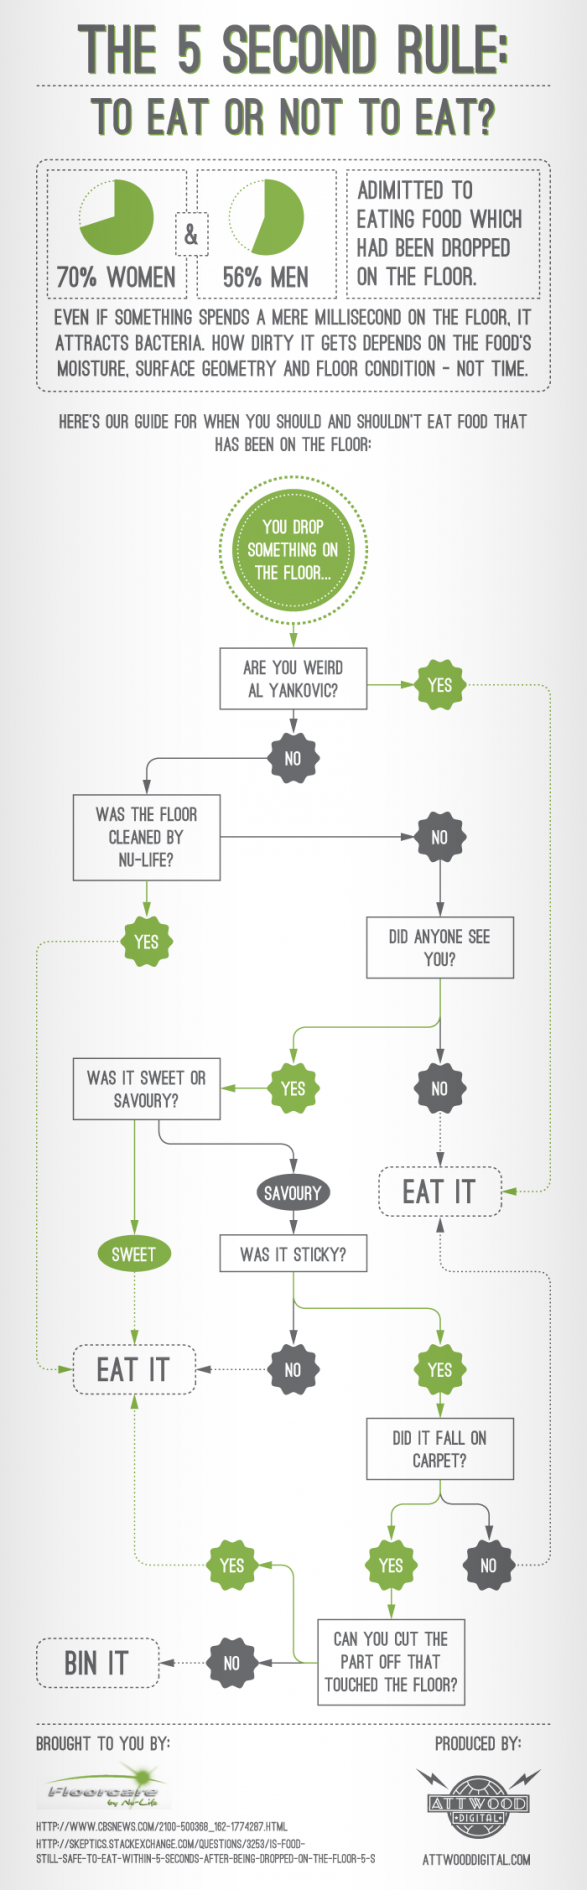 The 5 Second Rule: To Eat Or Not To Eat?